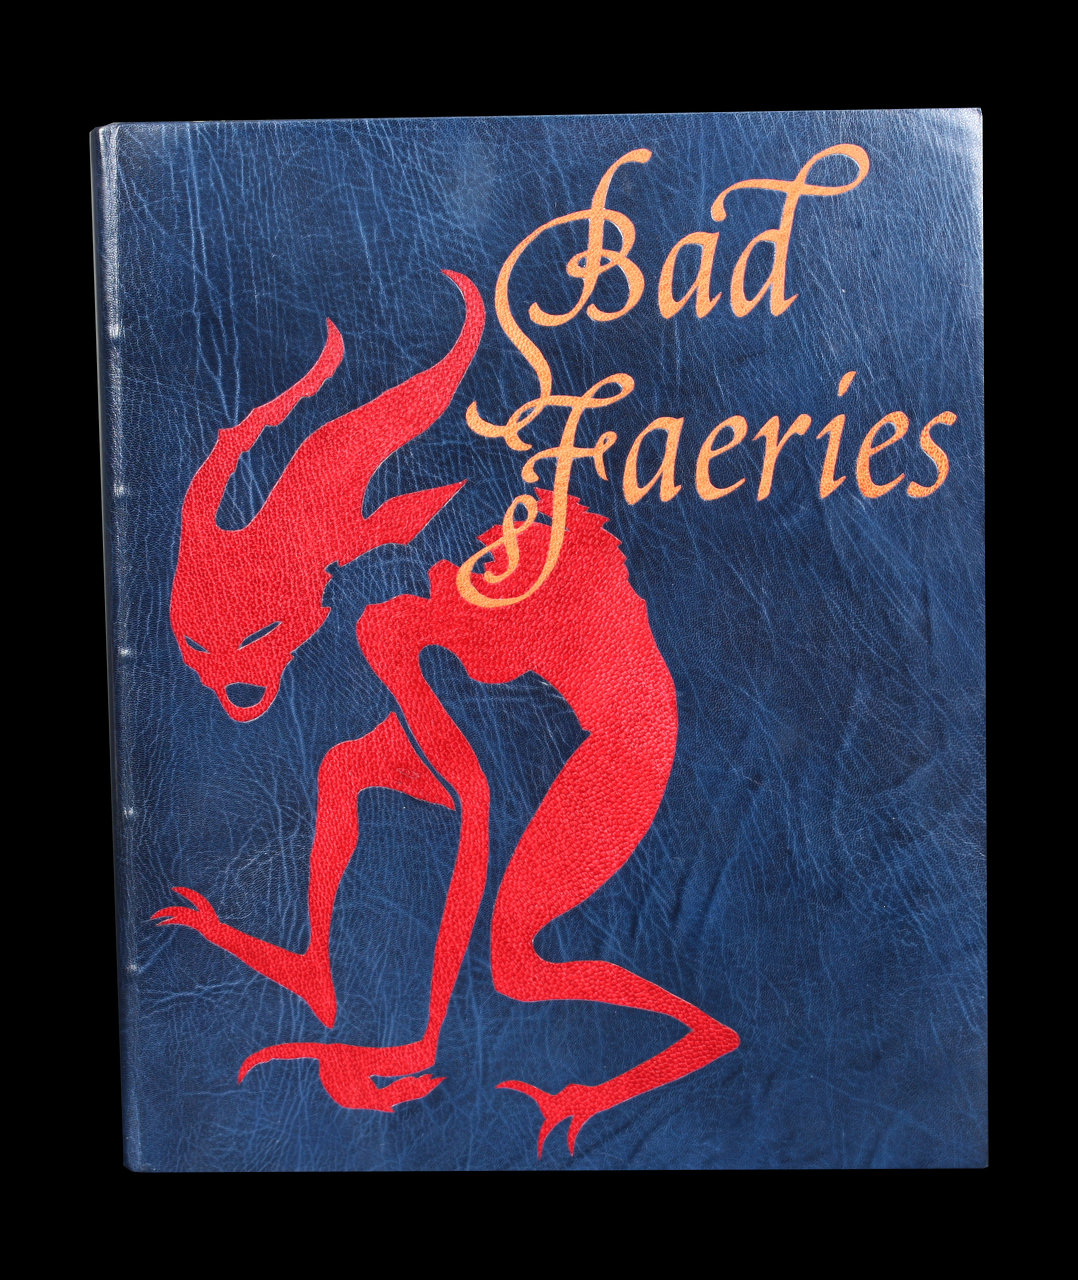 Good Faeries-Bad Faeries